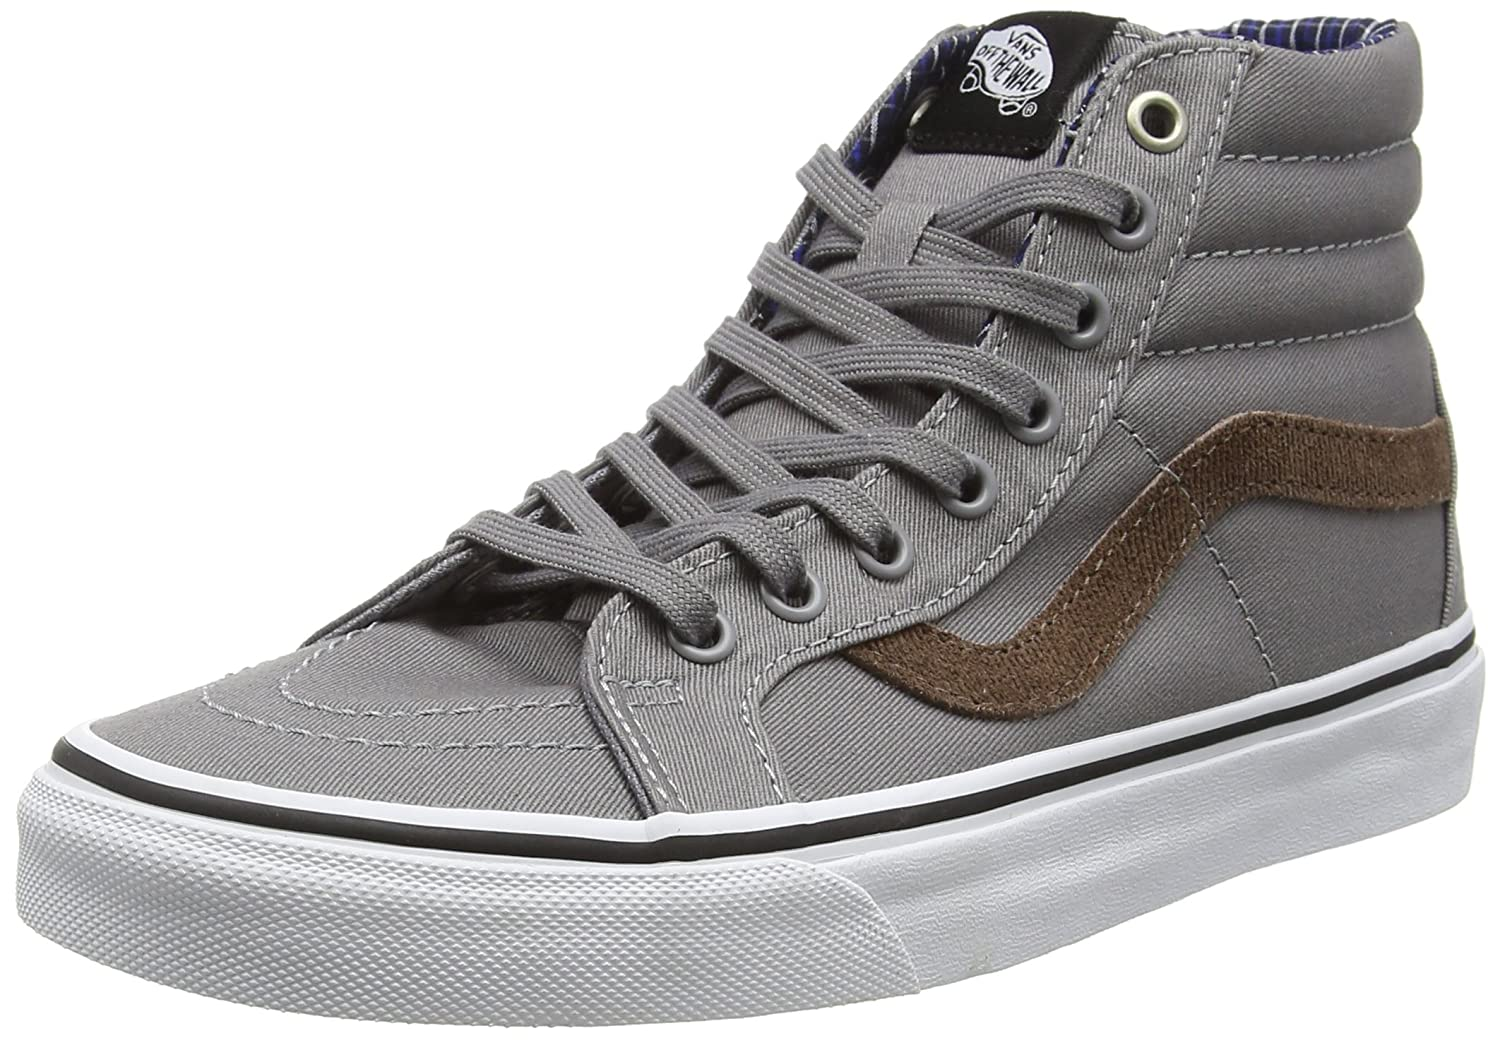 VANS MENS SK8 HI REISSUE LEATHER SHOES B019KWJ8LK 8.5 D(M) US|Frost Gray